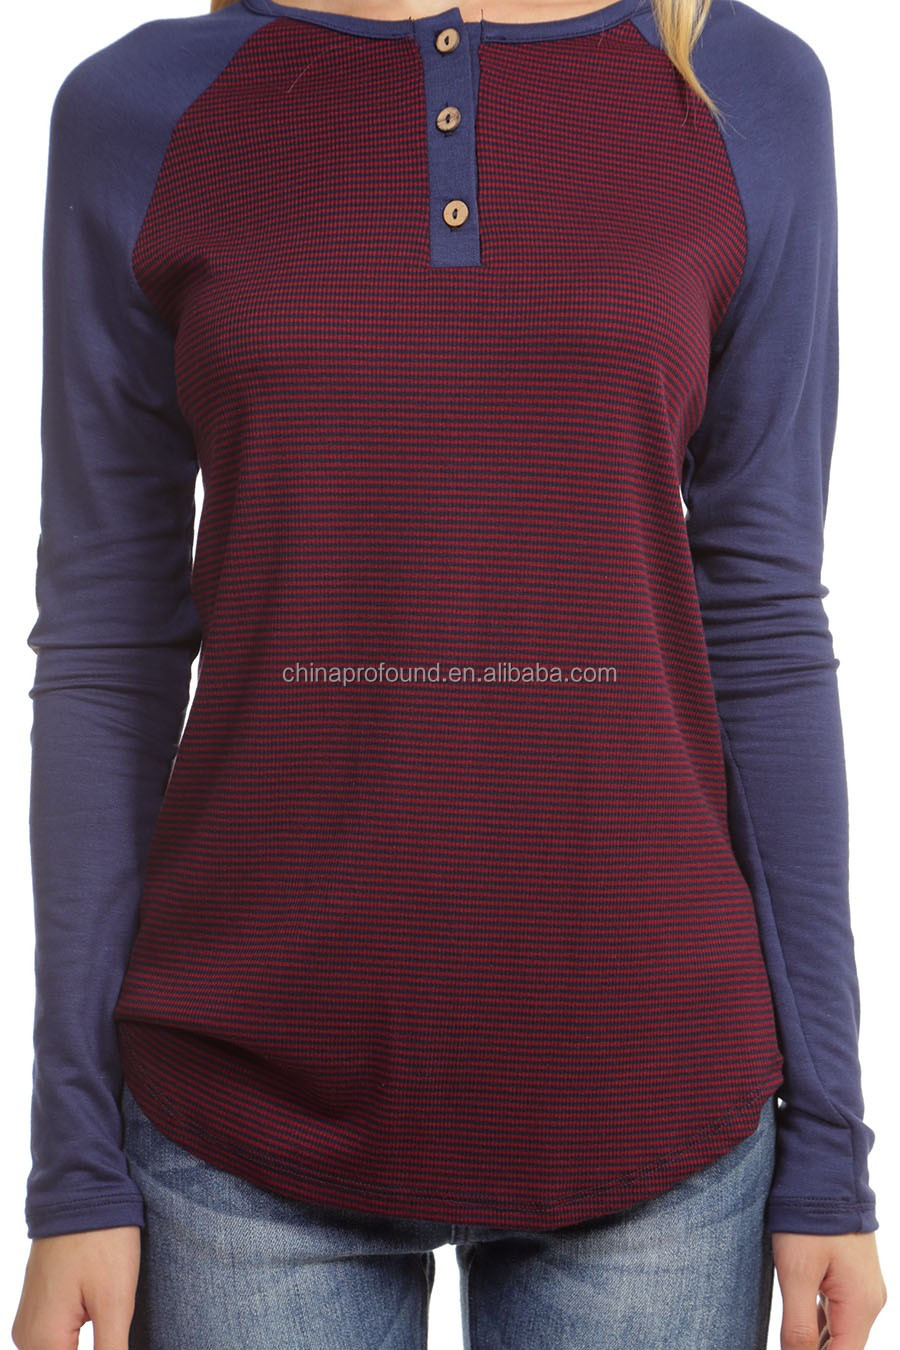 multi color button casual long sleeve slim fit blank wholesale 100% cotton crew neck striped t-shirt women 2016